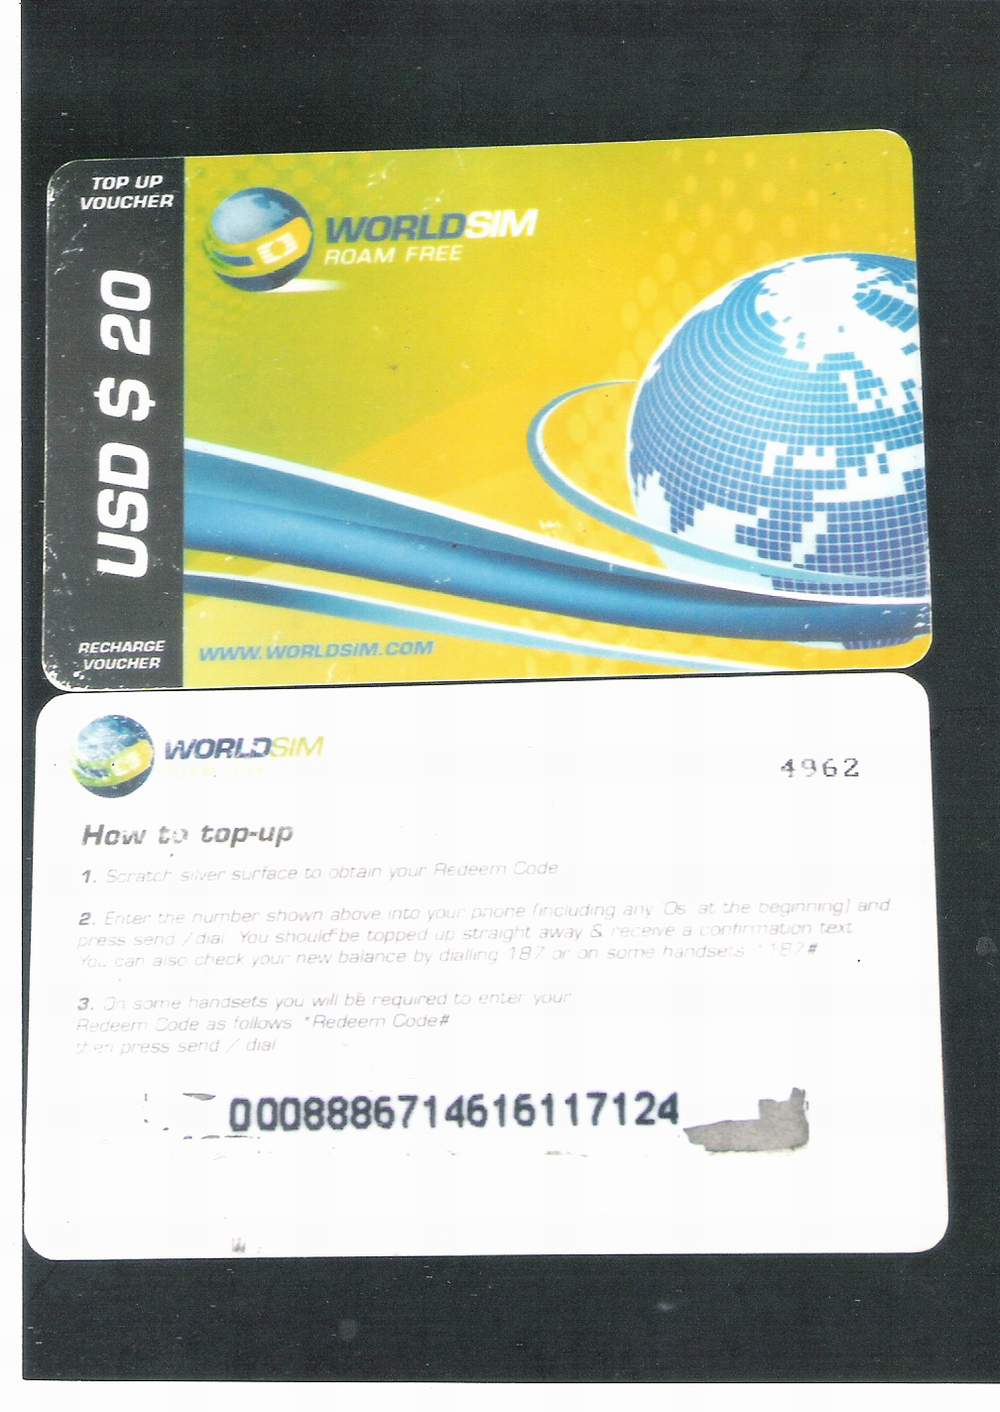 Buy Worldsim Topup Available Whole/retail Call 080-34489191